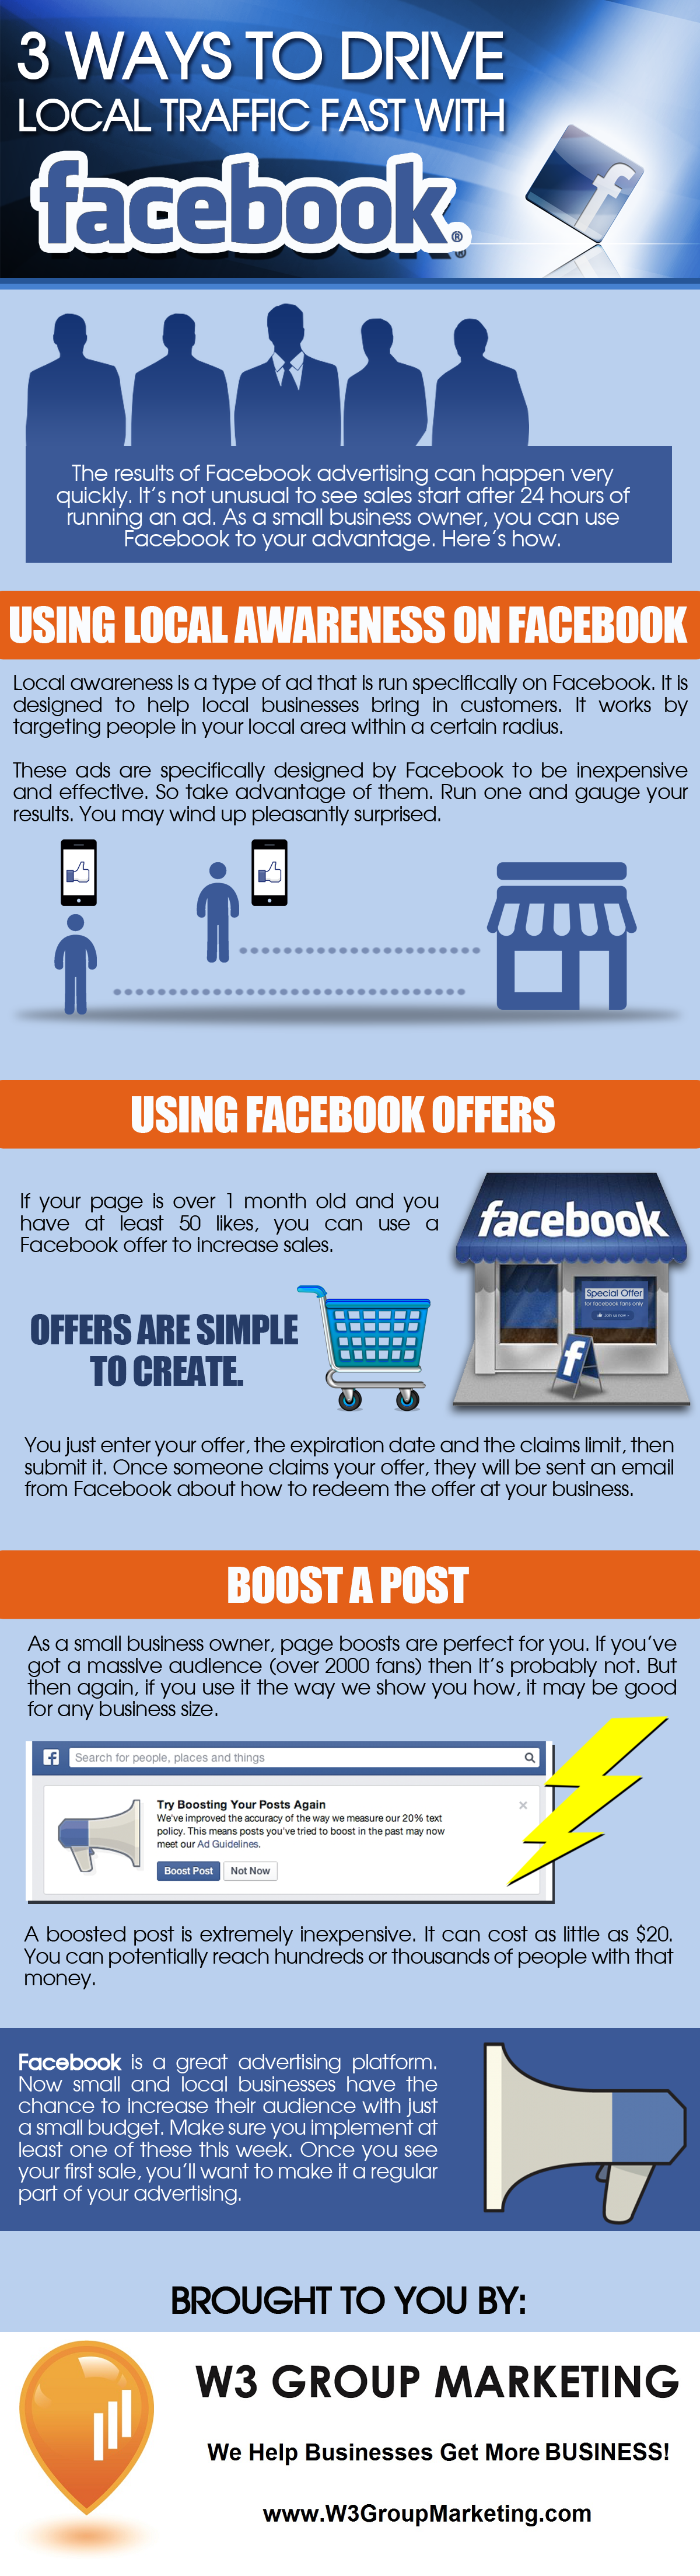 Infographic: Three Ways to Drive Local Traffic Fast with Facebook Advertising